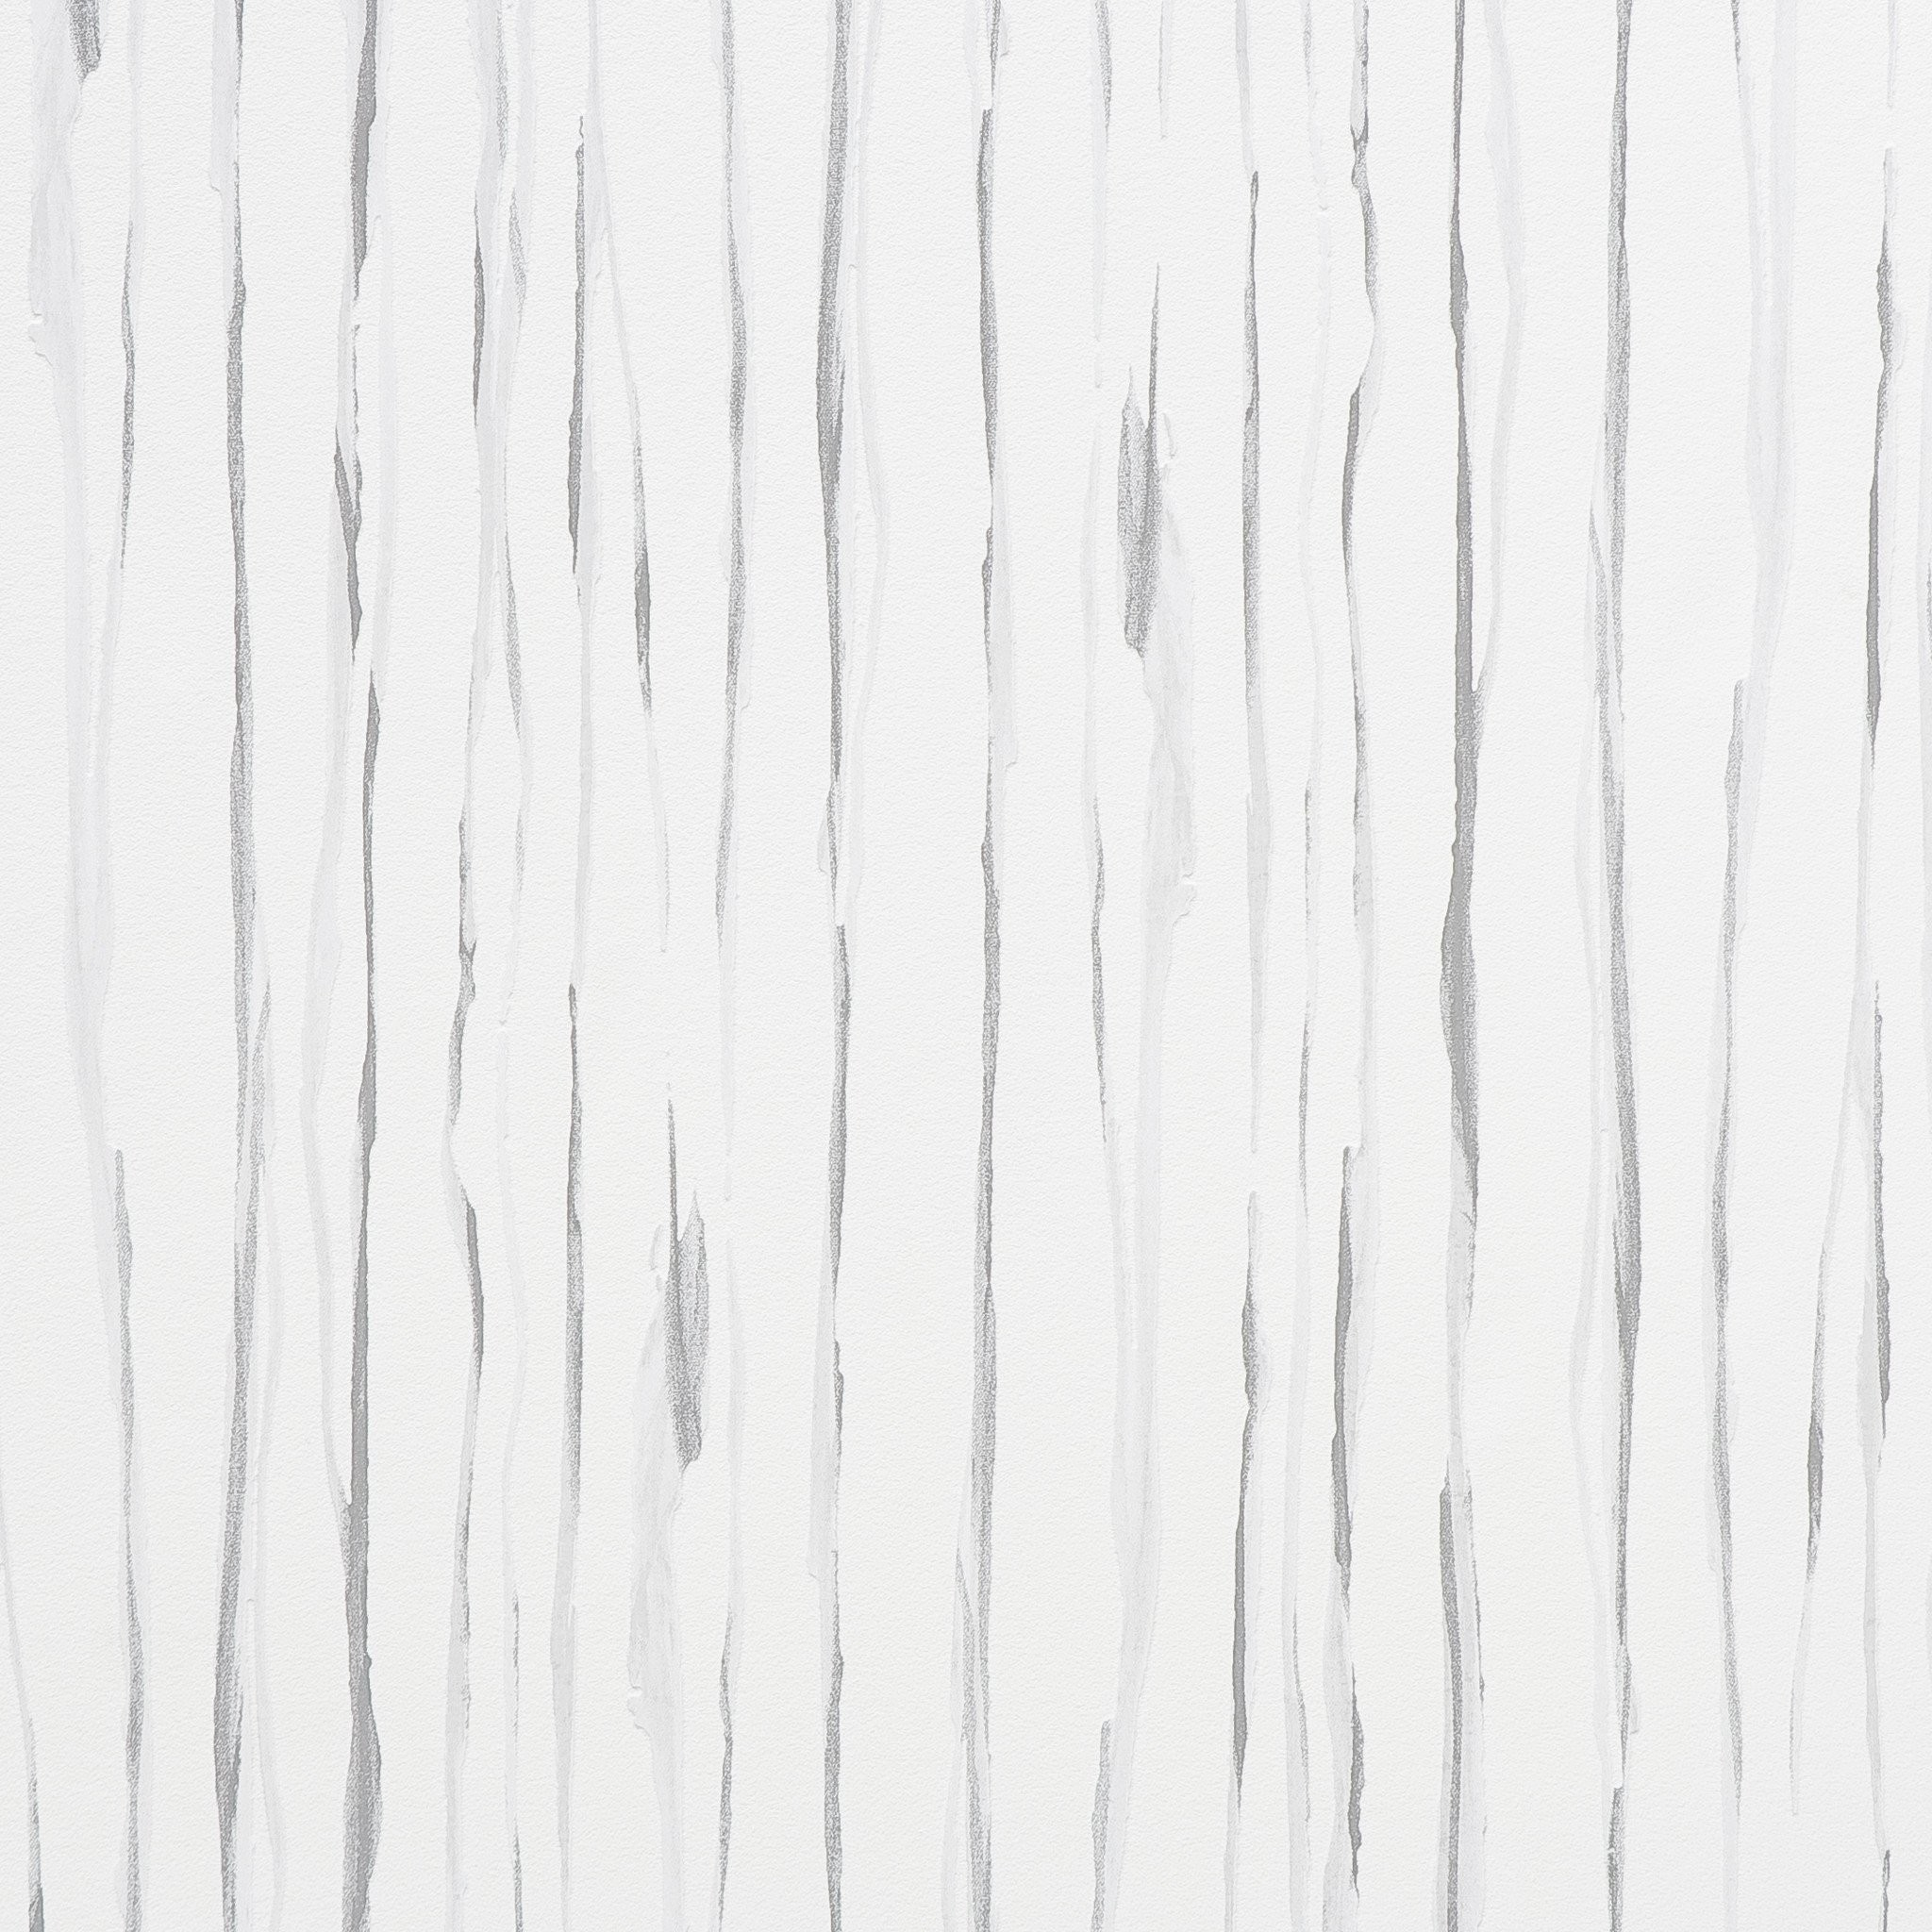 Abstract Stripes Wallpaper in White design by BD Wall